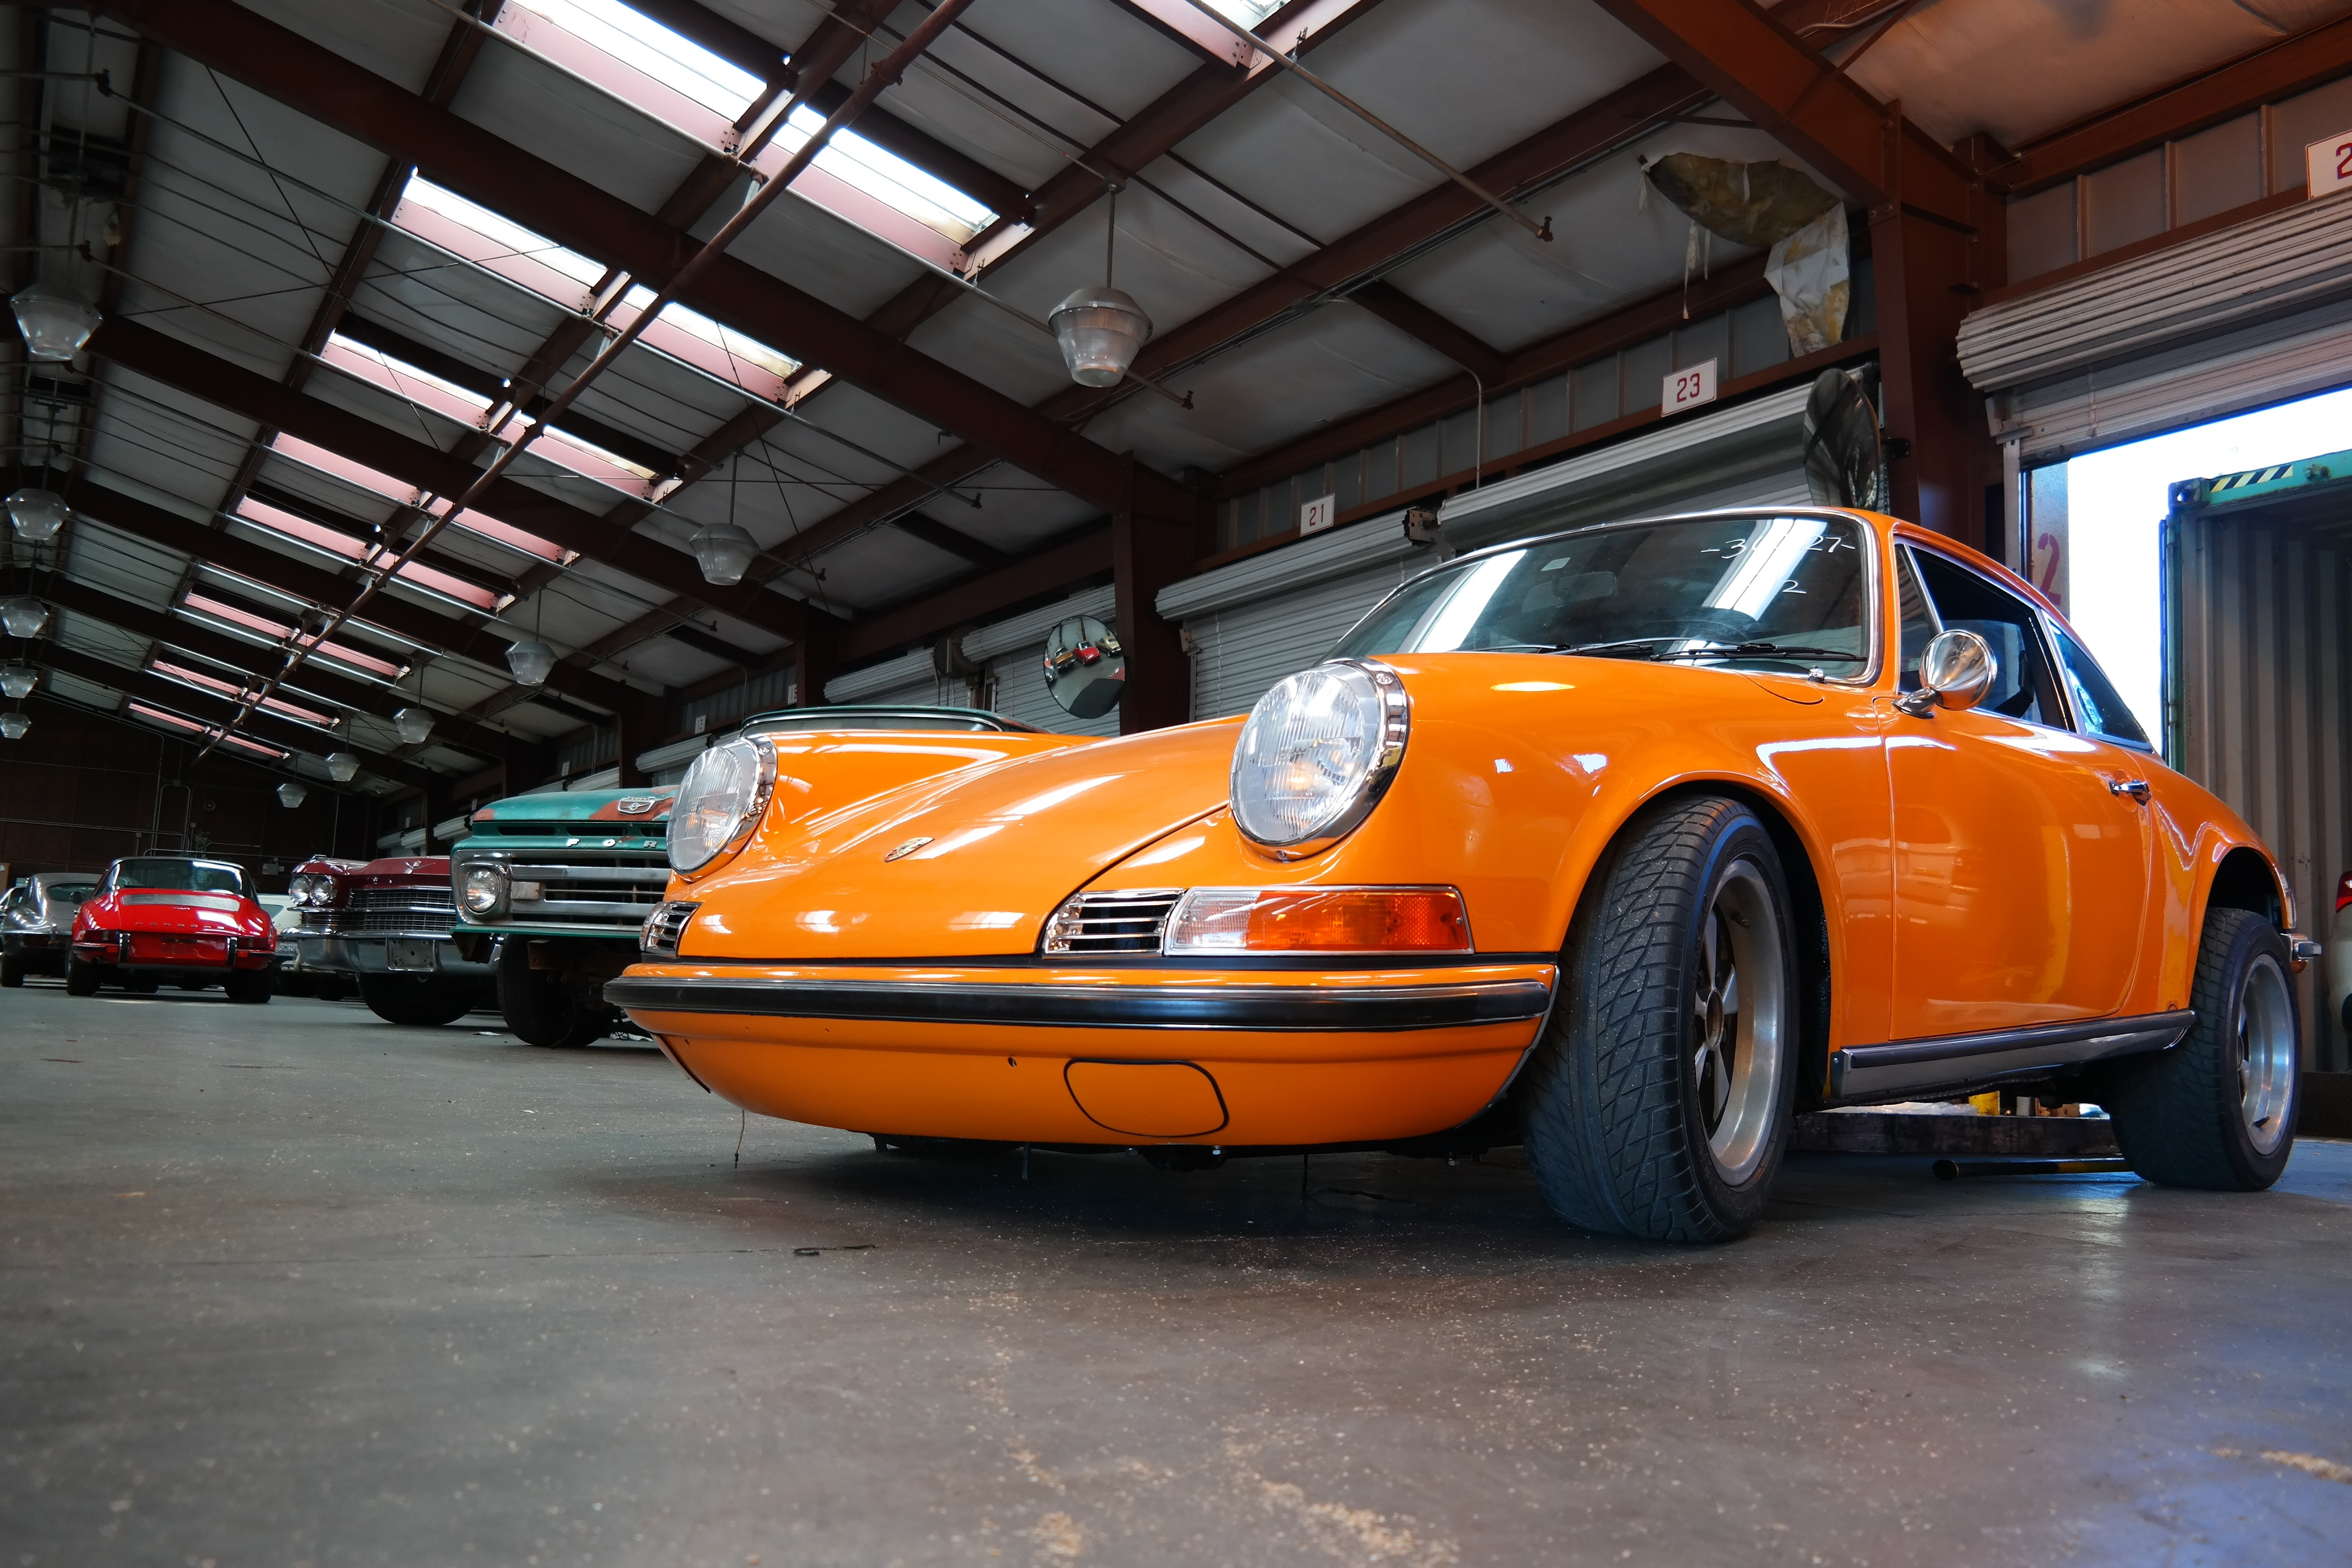 Classic cars waiting to be shipped overseas in a container